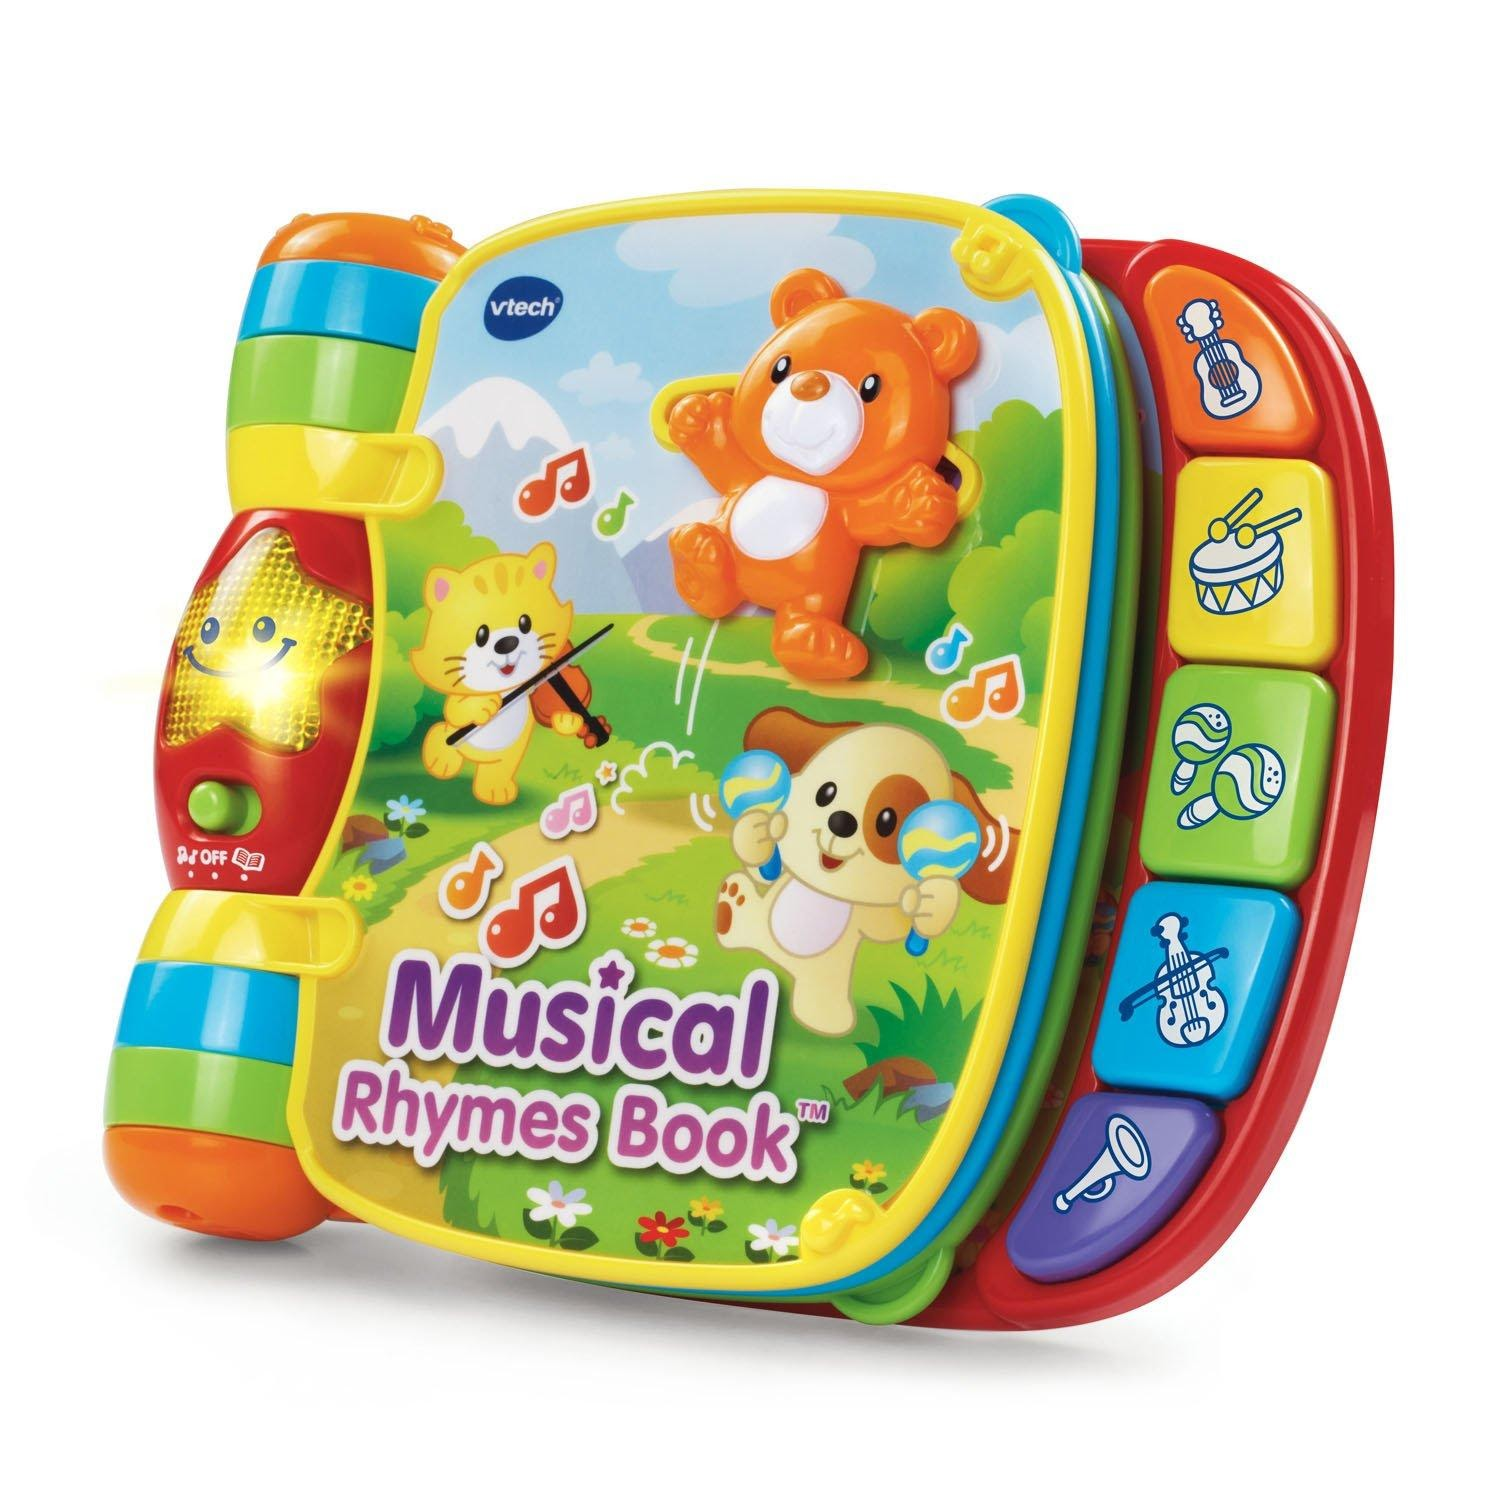 VTech Musical Rhymes Book on white background